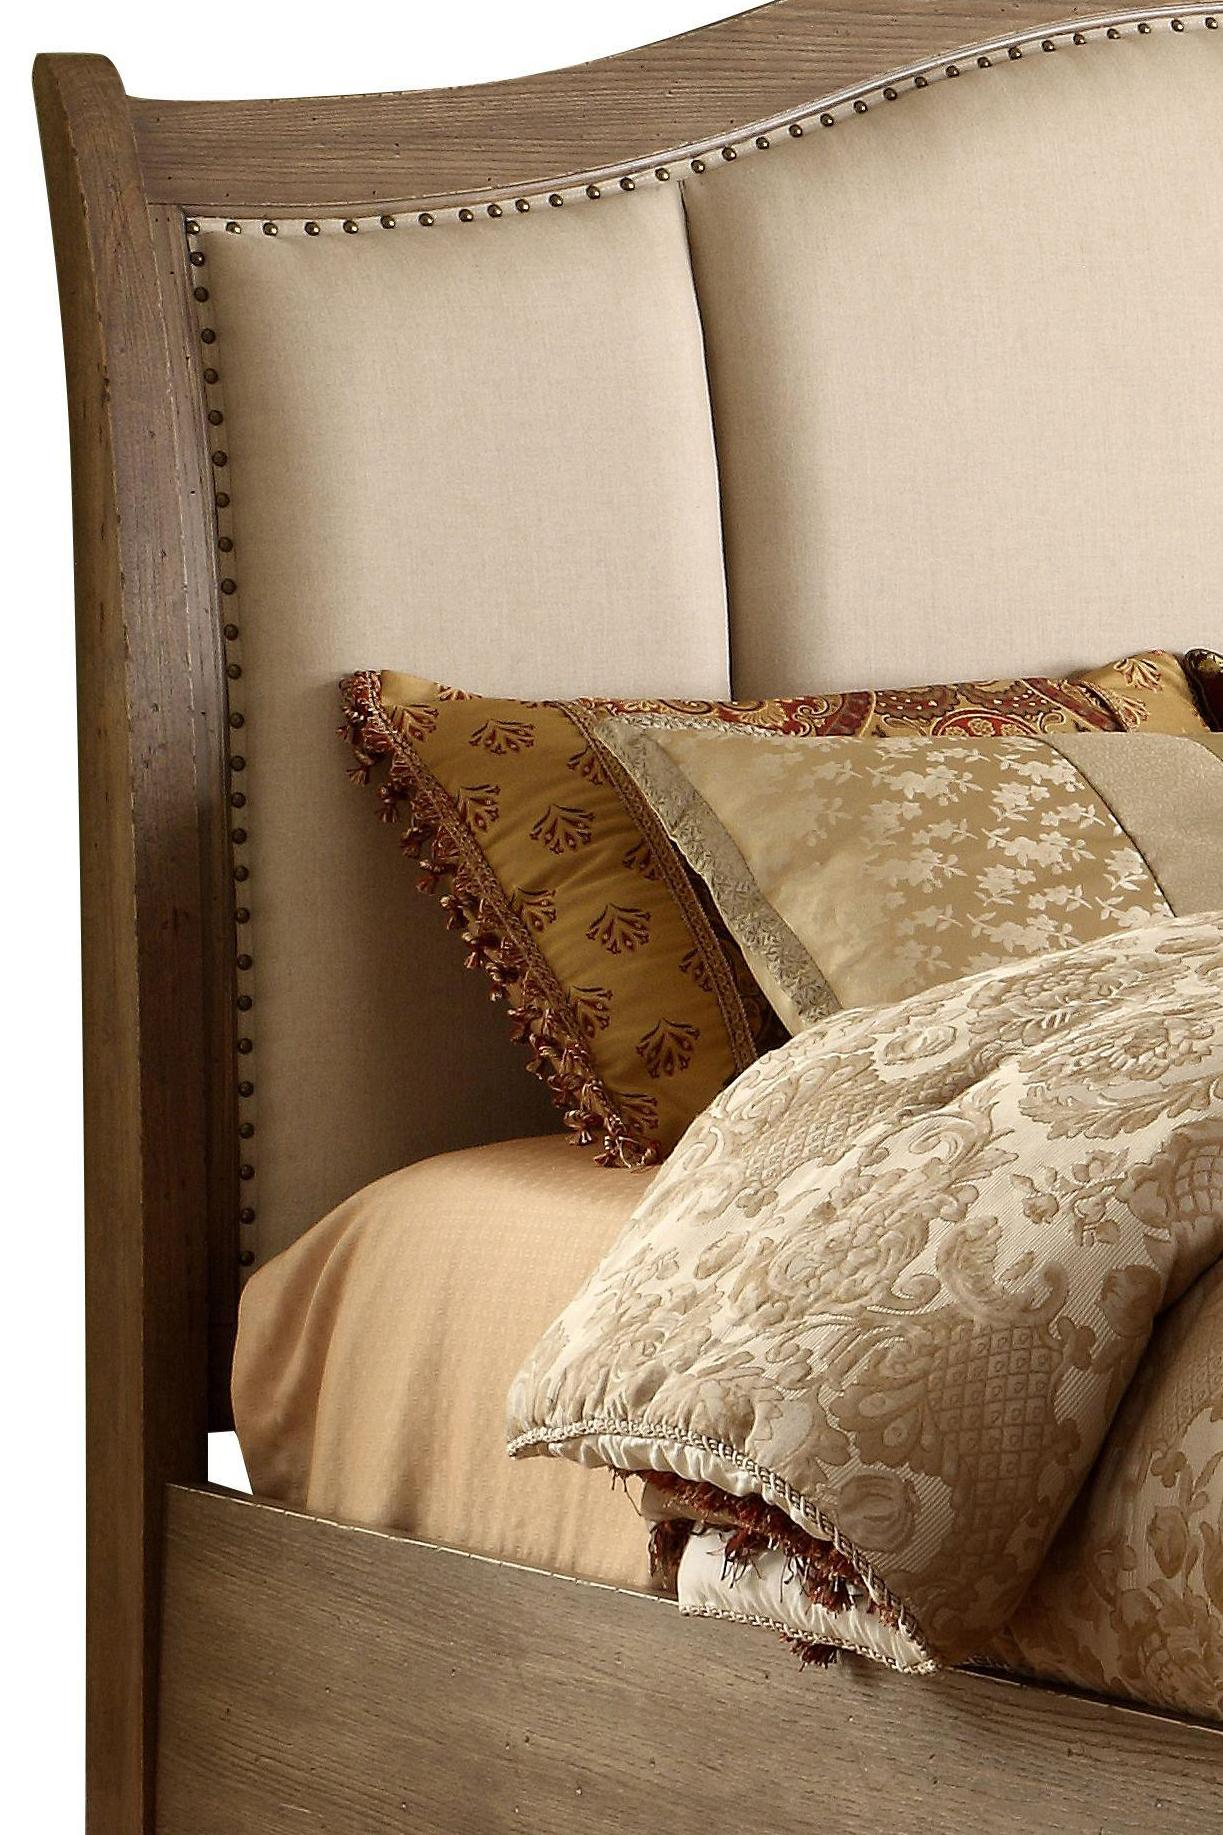 Coventry (32400) By Riverside Furniture   Belfort Furniture   Riverside Furniture  Coventry Dealer